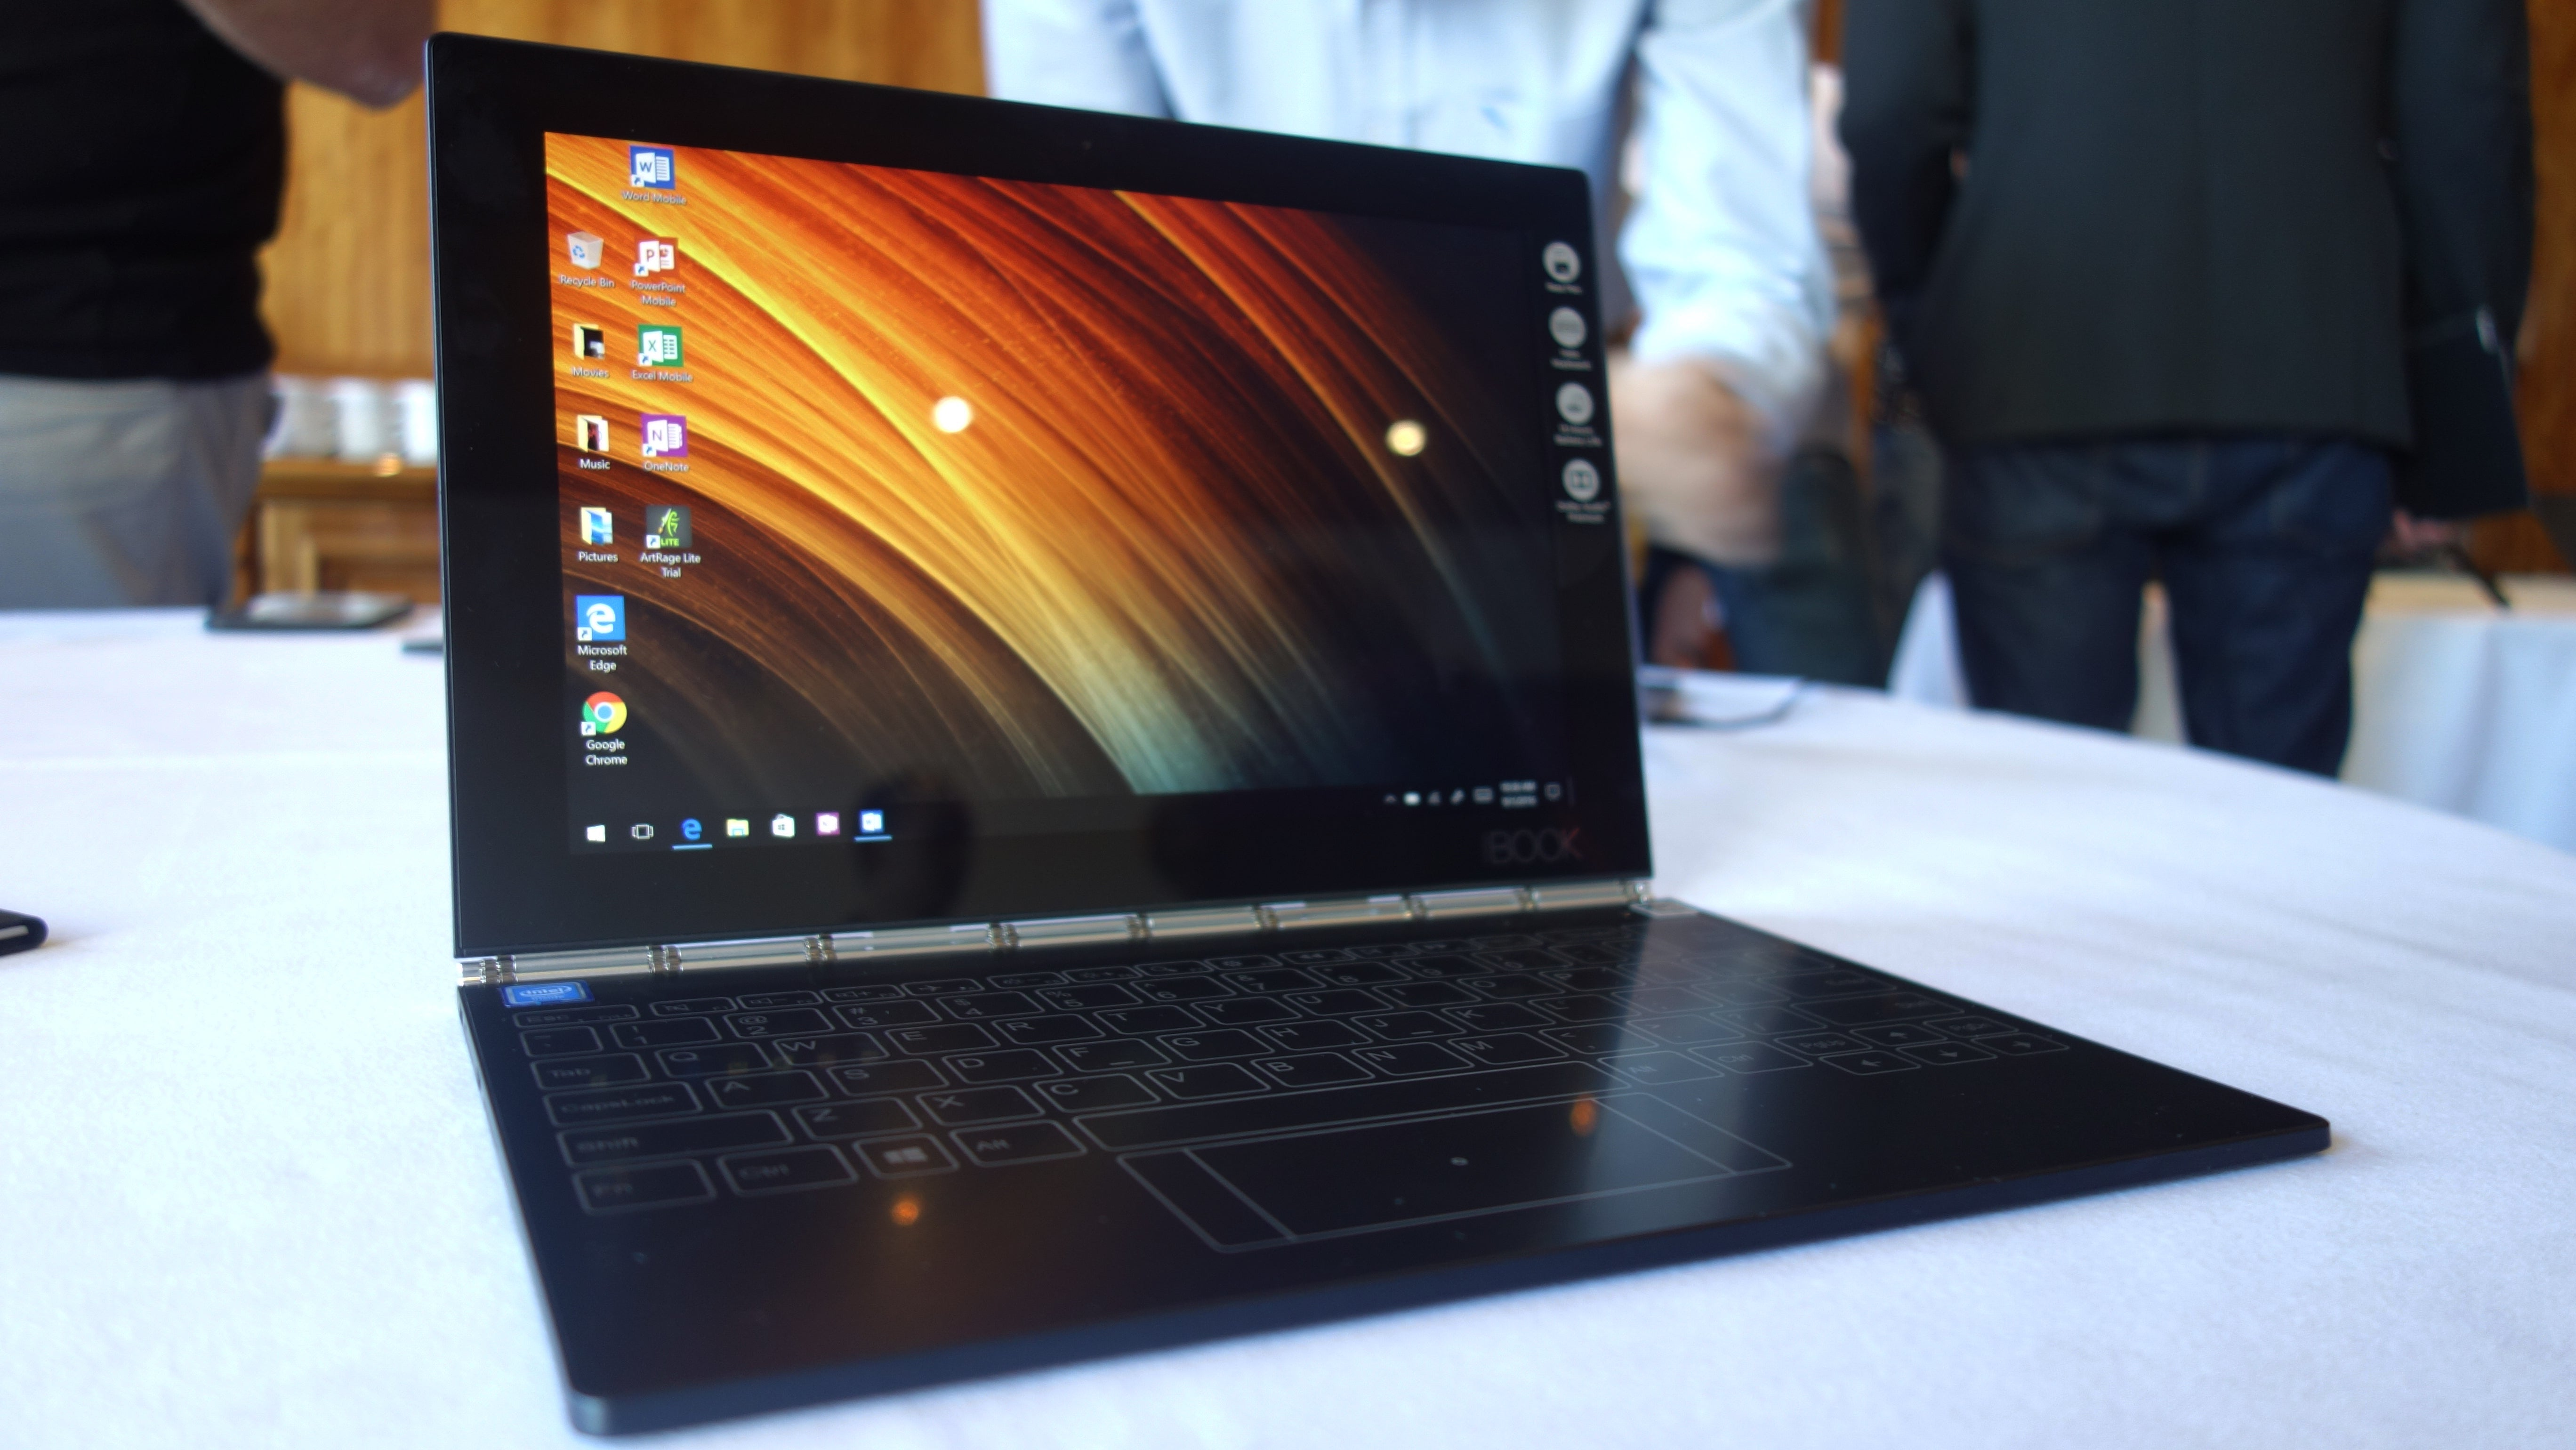 You Can Now Pre Order The Lenovo Yoga Book In The Uk Trusted Reviews